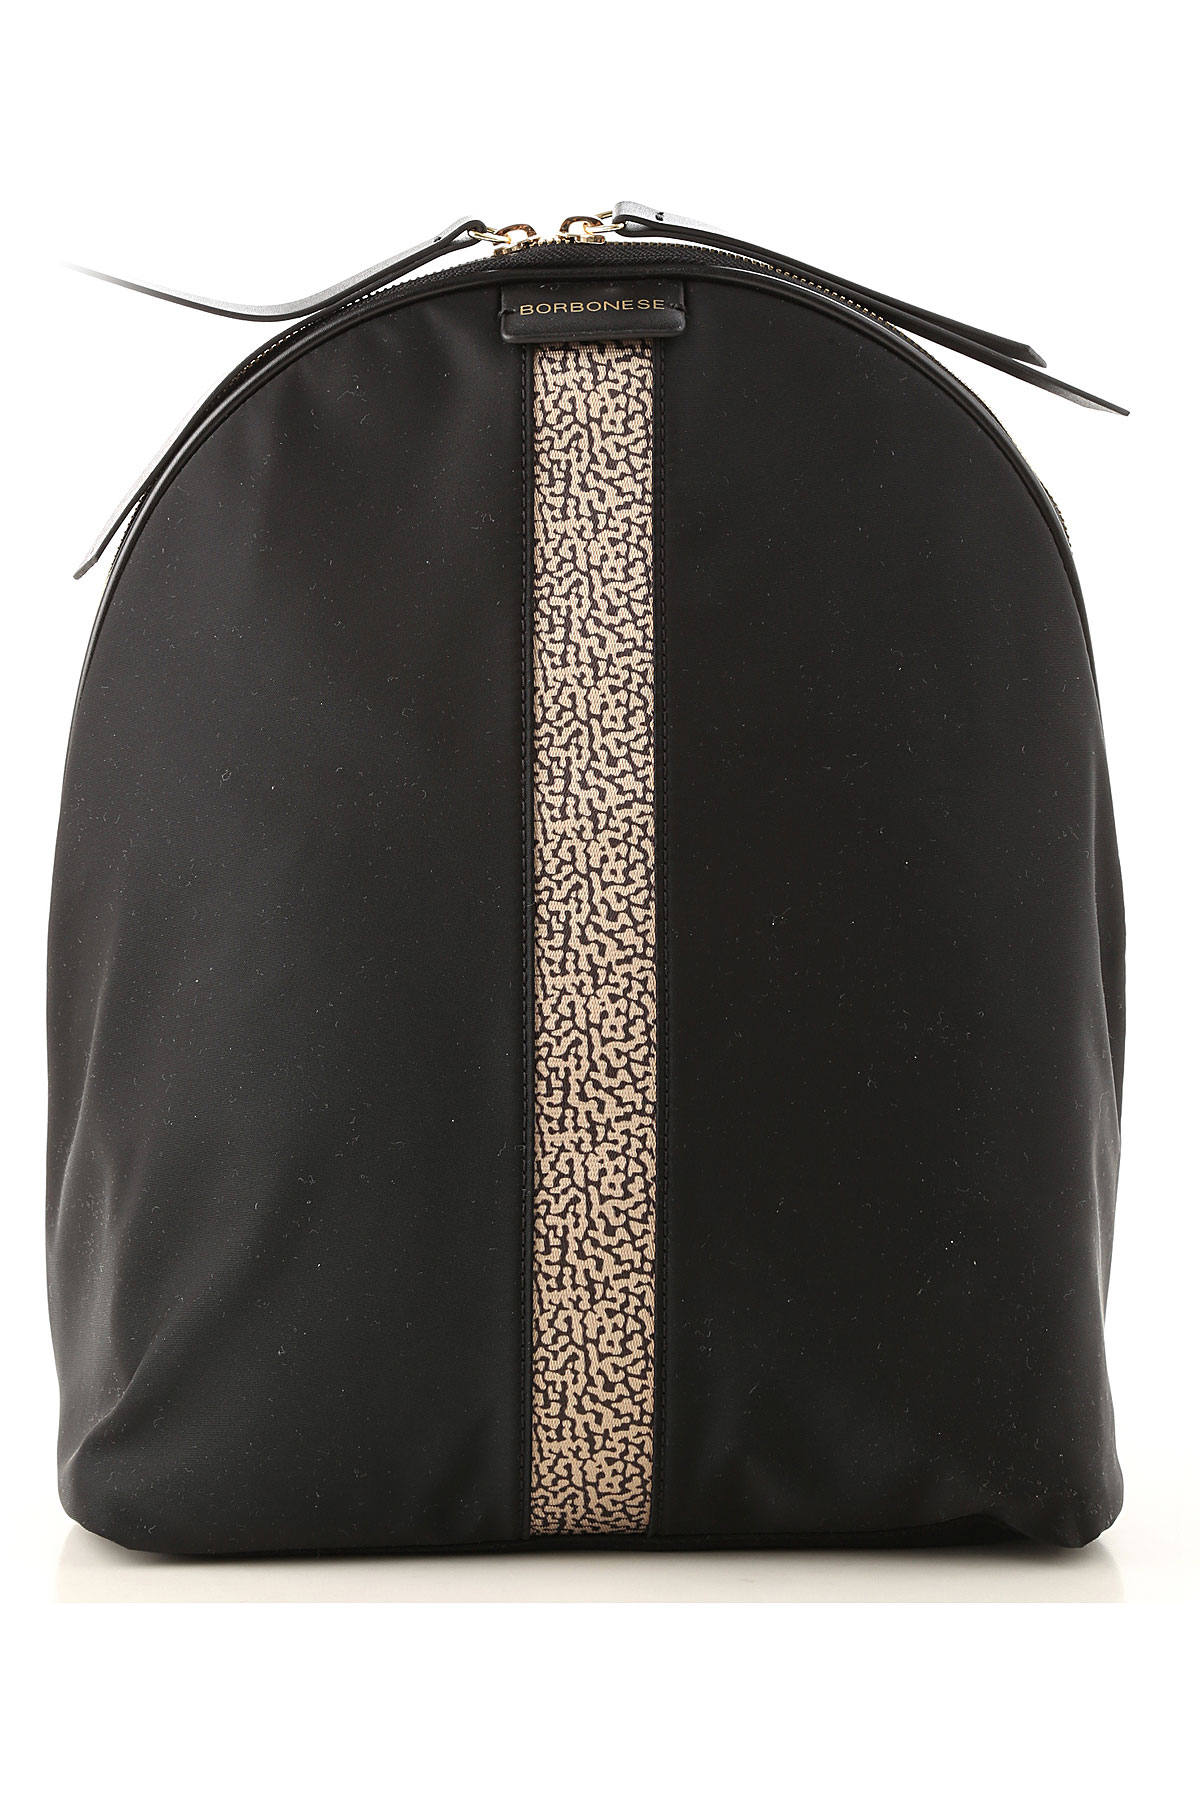 Image of Borbonese Backpack for Women, Black, Nylon, 2017